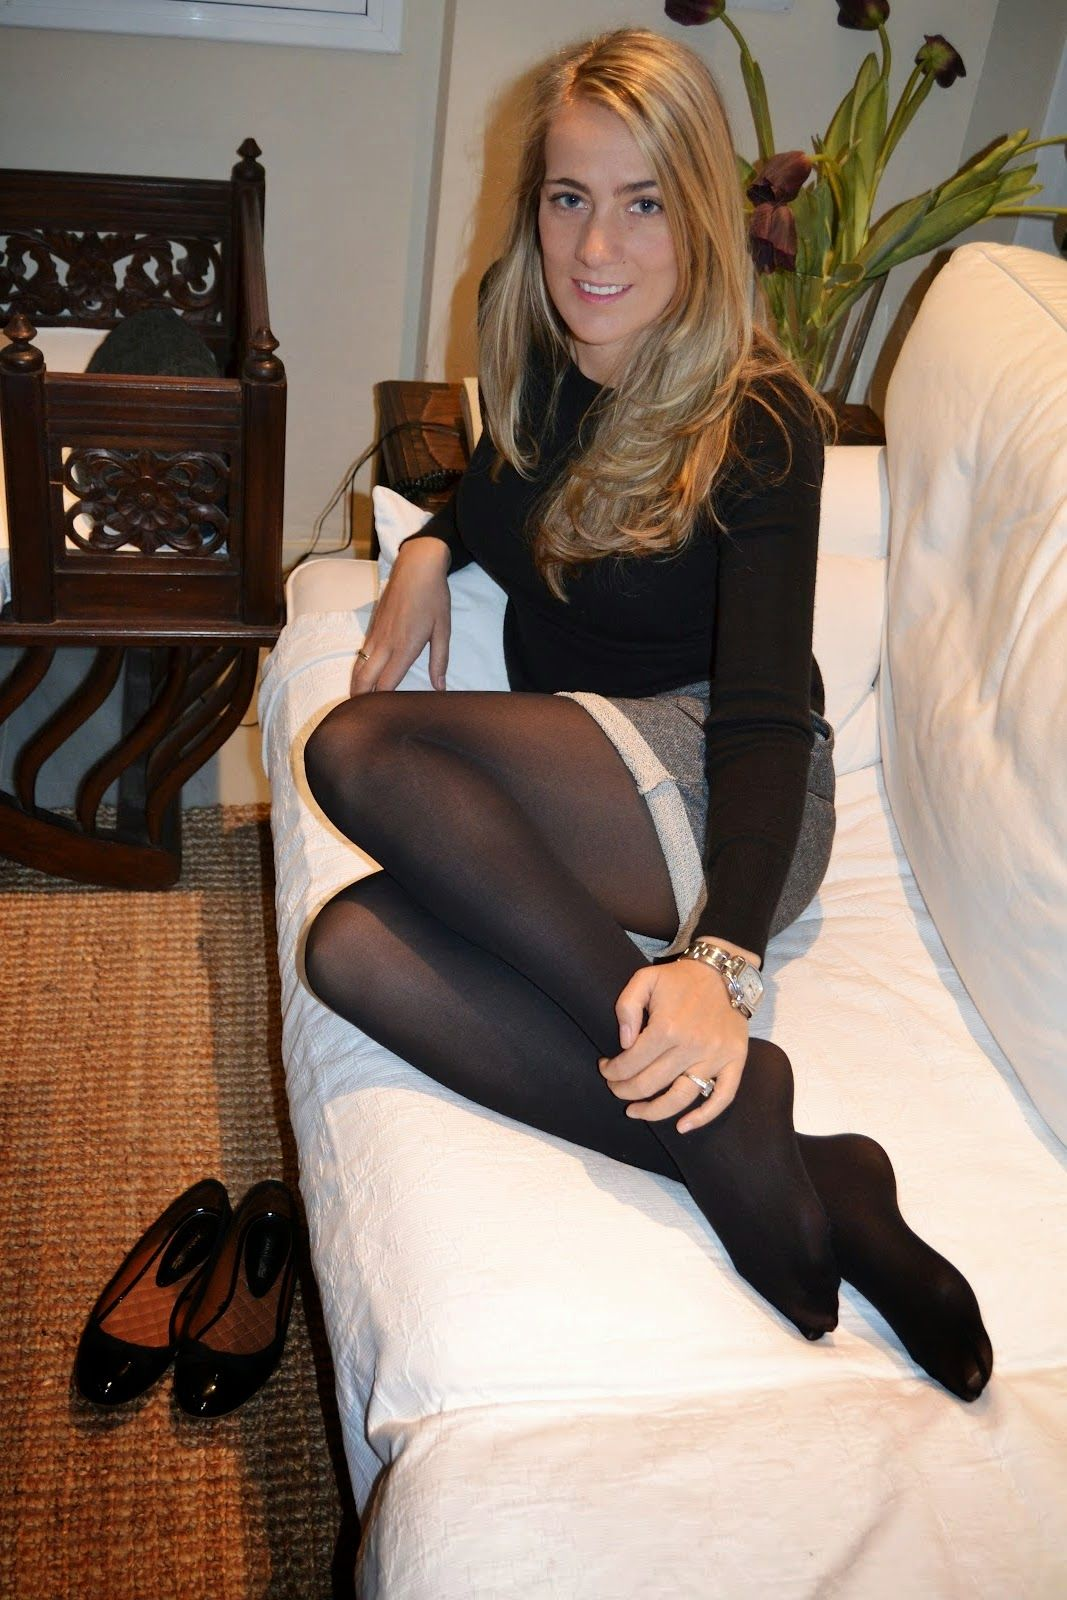 College girls pantyhose blogspot